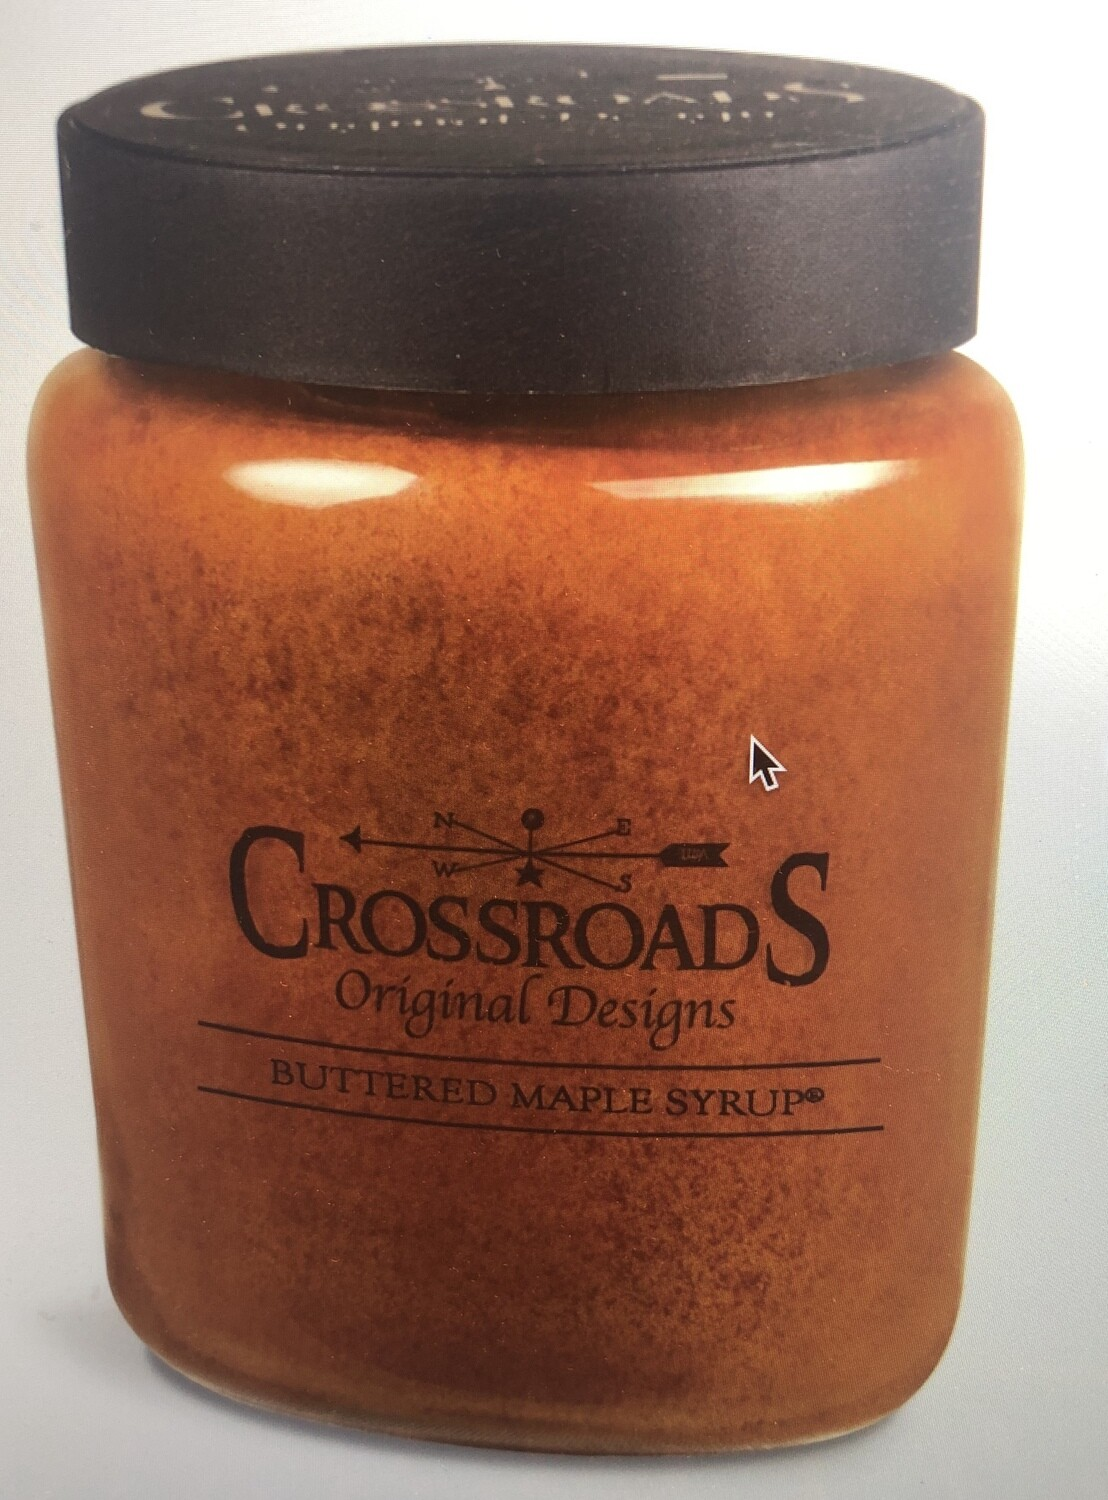 Crossroads Buttered Maple Syrup 26 oz.